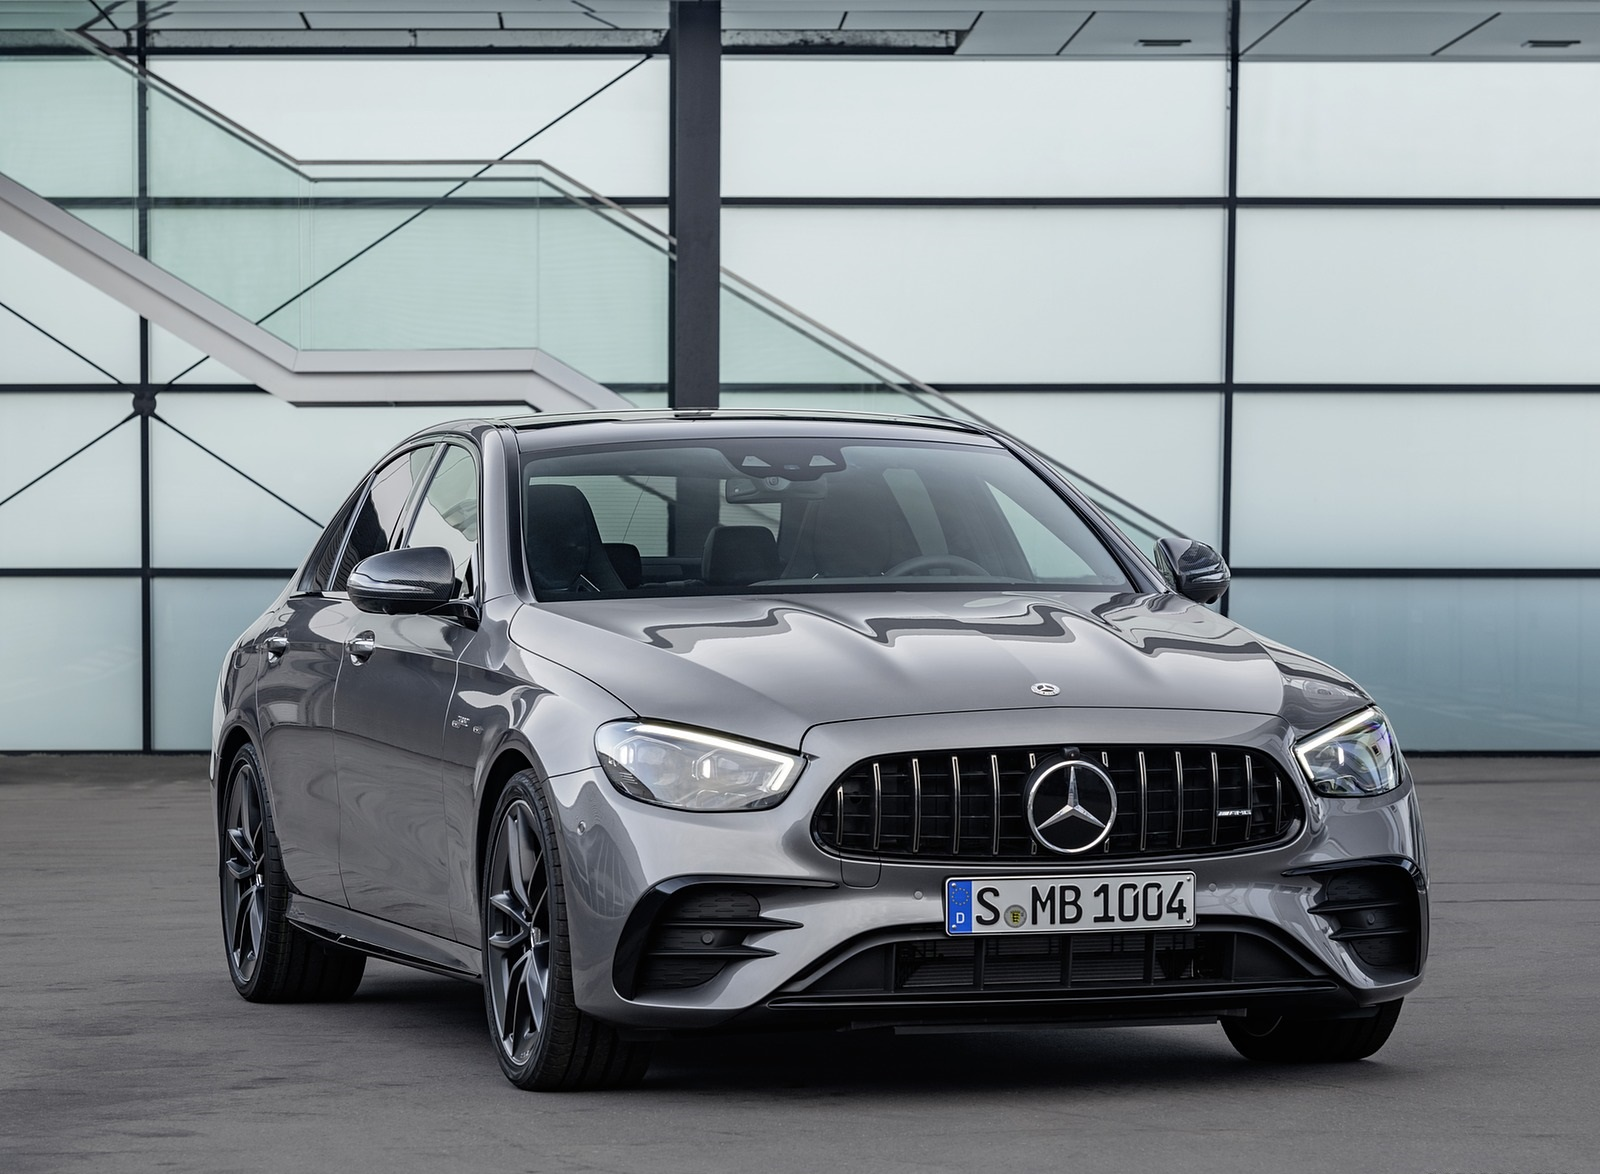 2021 Mercedes-AMG E 53 4MATIC+ Night Package (Color: Selenite Grey Metallic) Front Three-Quarter Wallpapers (9)